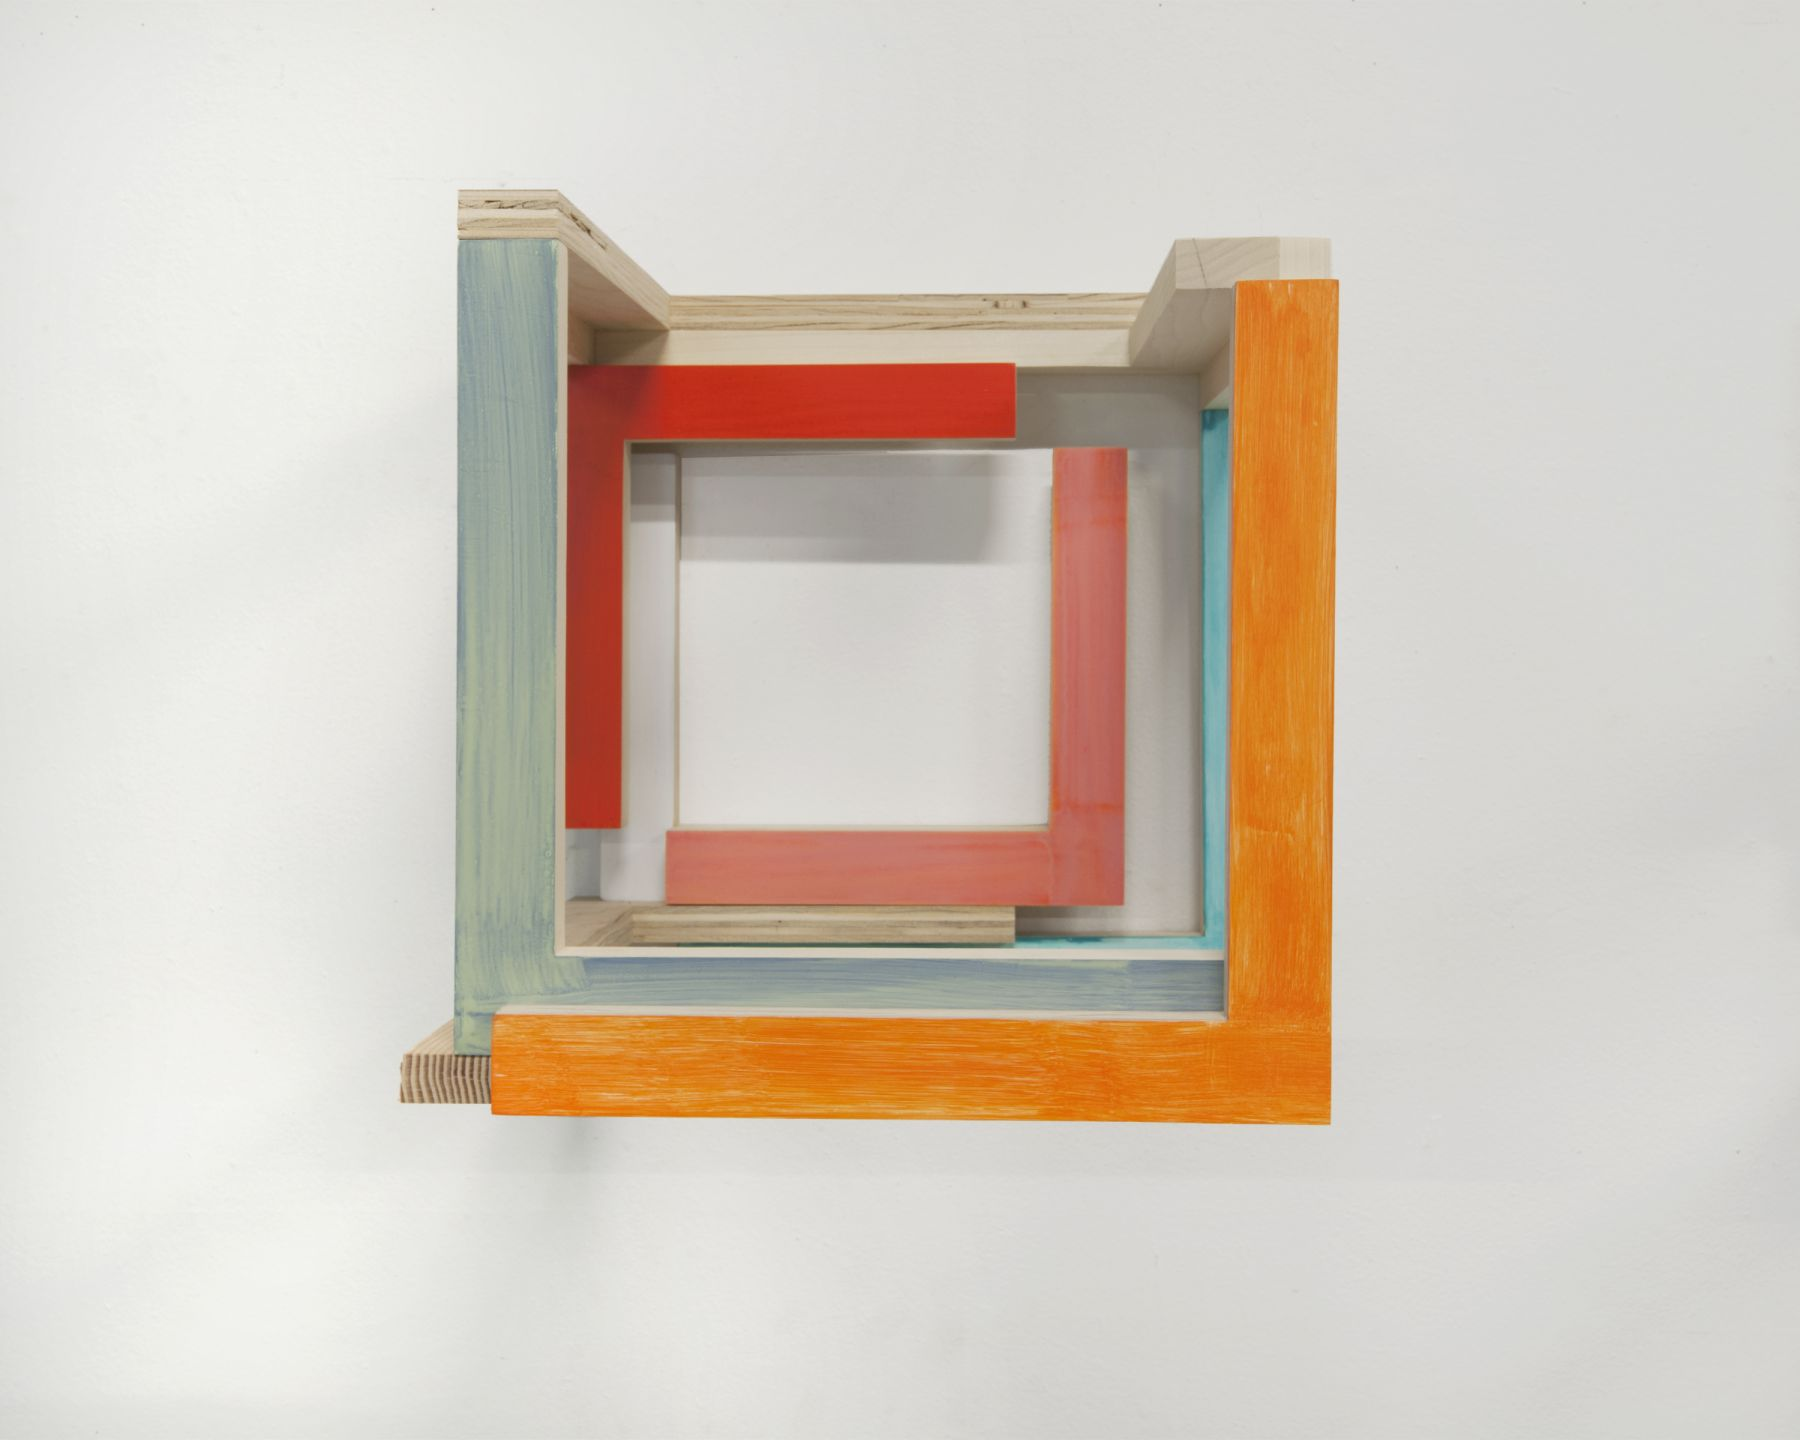 "James Woodfill ""Training Model: Wall Model #2"", birch plywood, poplar, maple with acrylic and gesso, wall mounted, 15"" x 15"" x 15"", 2019, an open wooden wall sculpture with natural, orange, blue-grey, blue, red and pink."